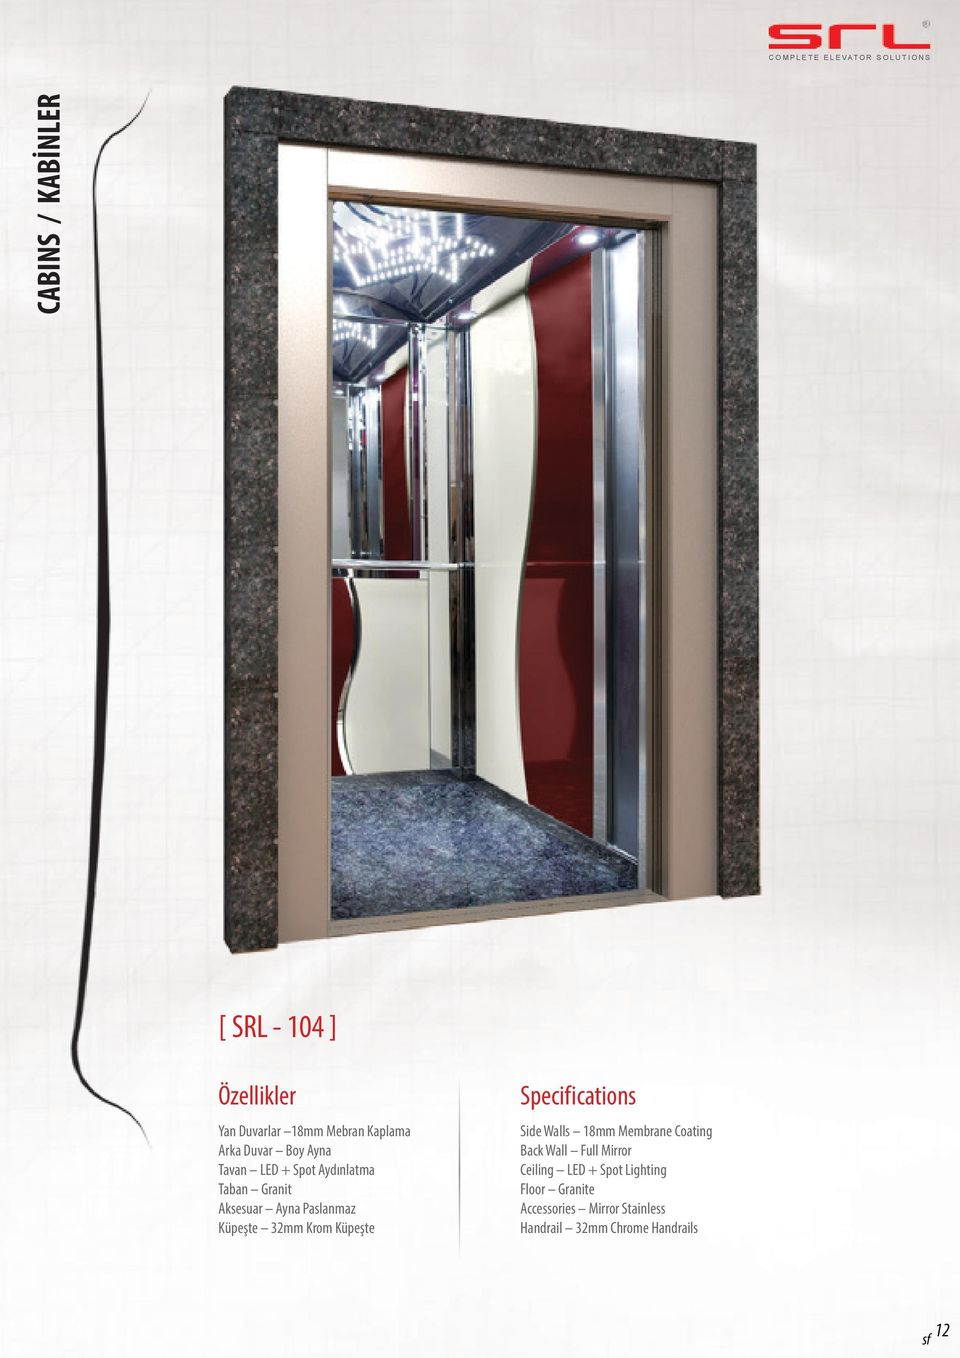 Küpeşte Specifications Side Walls 18mm Membrane Coating Back Wall Full Mirror Ceiling LED